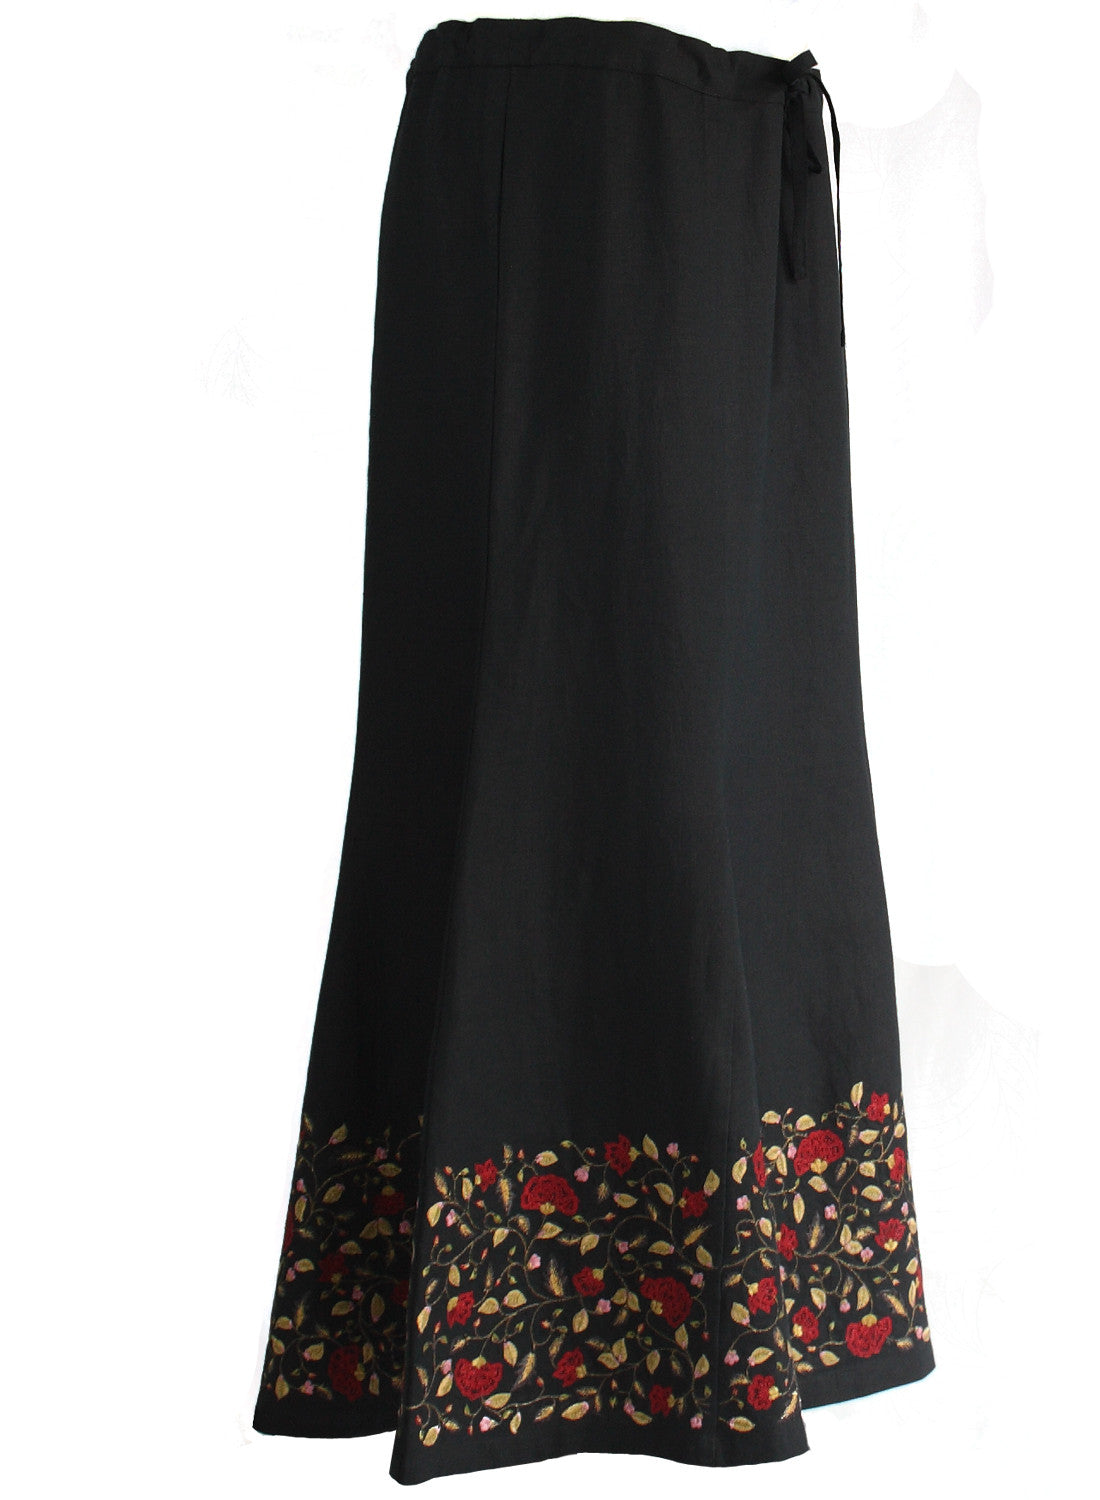 Ankle length Skirt in black linen with floral Embroidery - MINC ecofashion